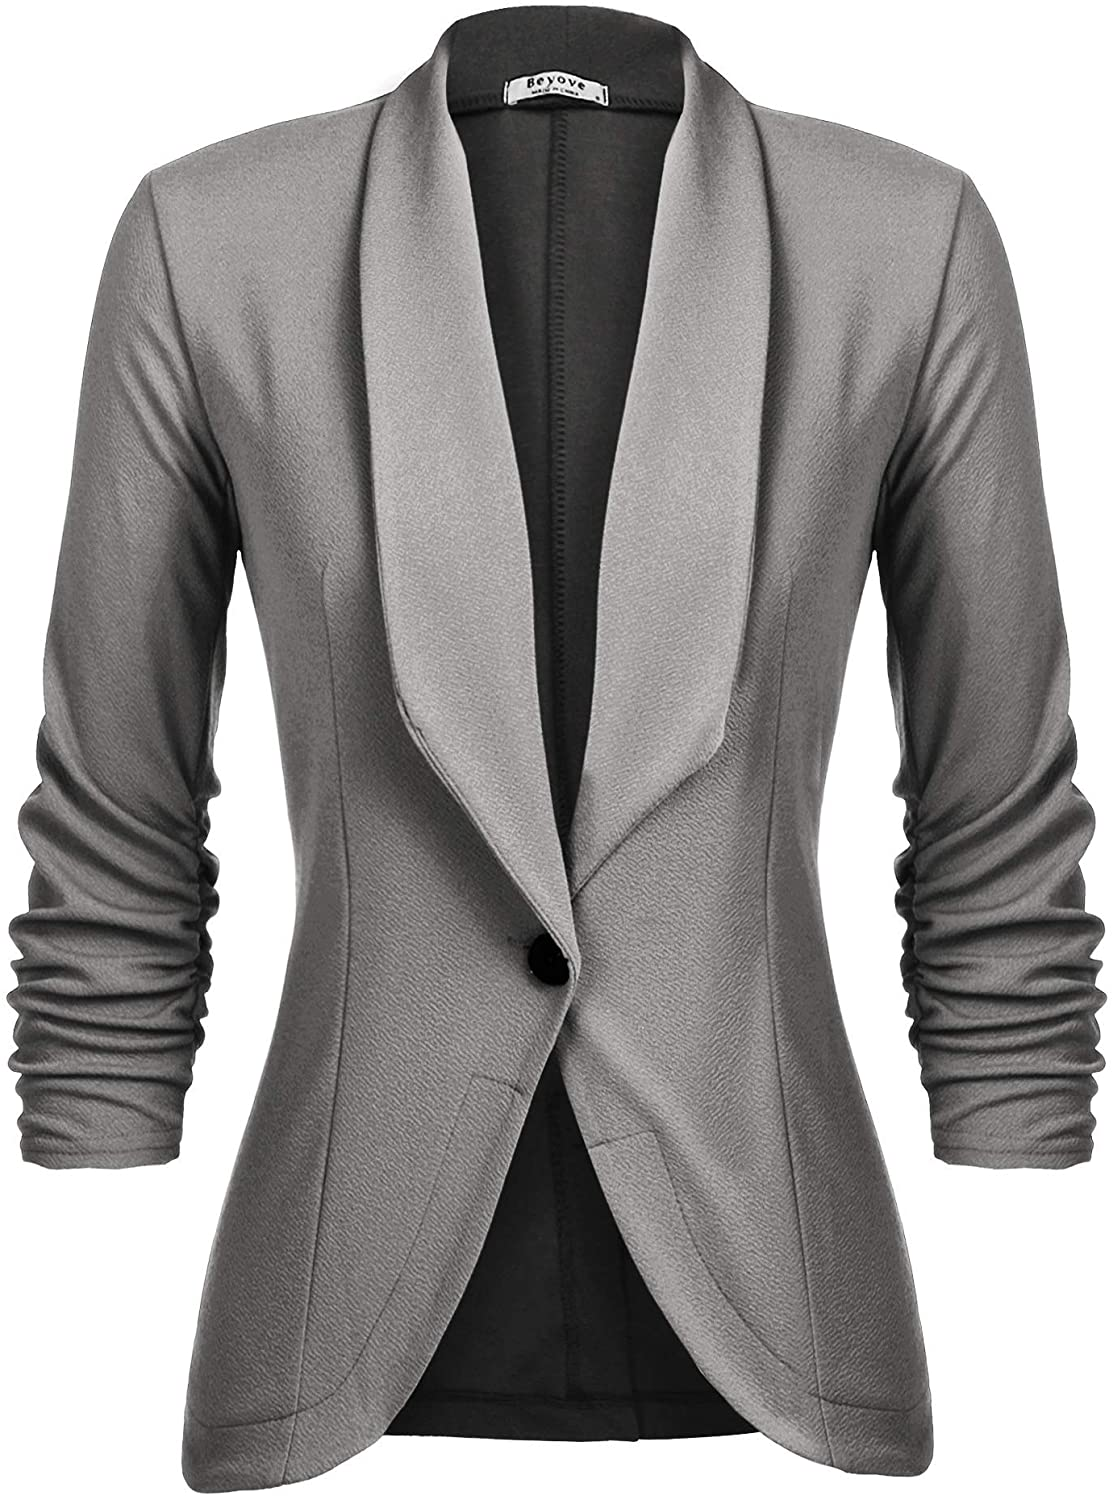 Beyove Women's 3/4 Stretchy Ruched Sleeve Open Front Lightweight Work Office Blazer Jacket with Plus Size (Size S~3XL)